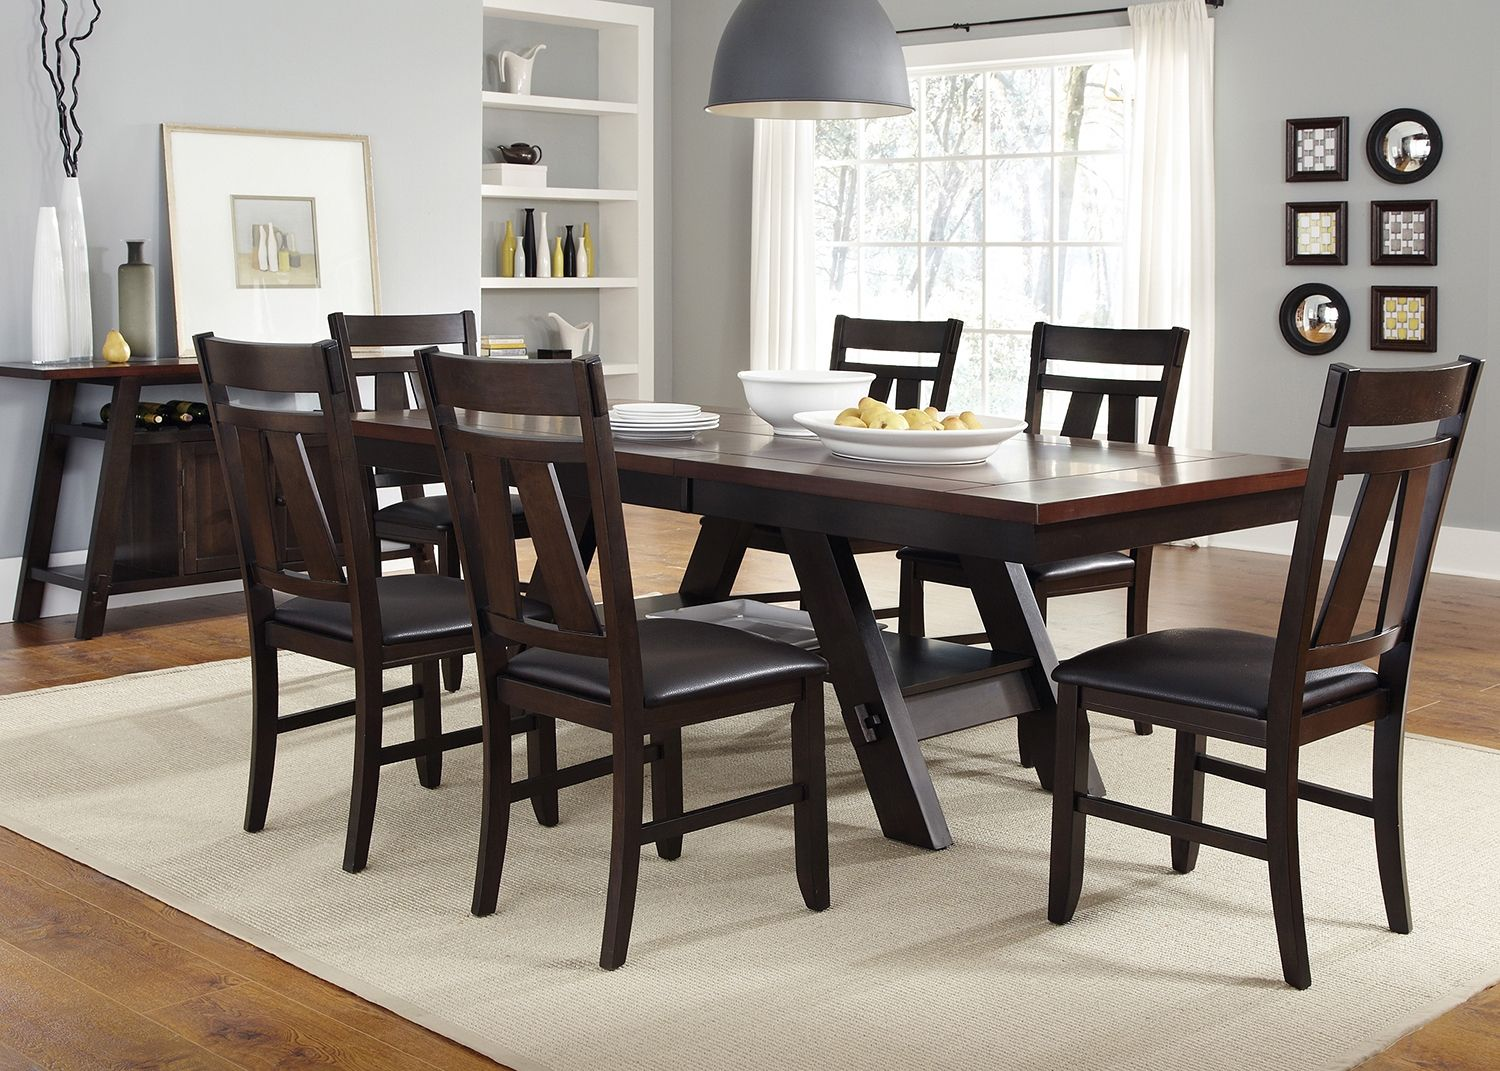 Lawson Dining Room Collection Leon 39s Hello